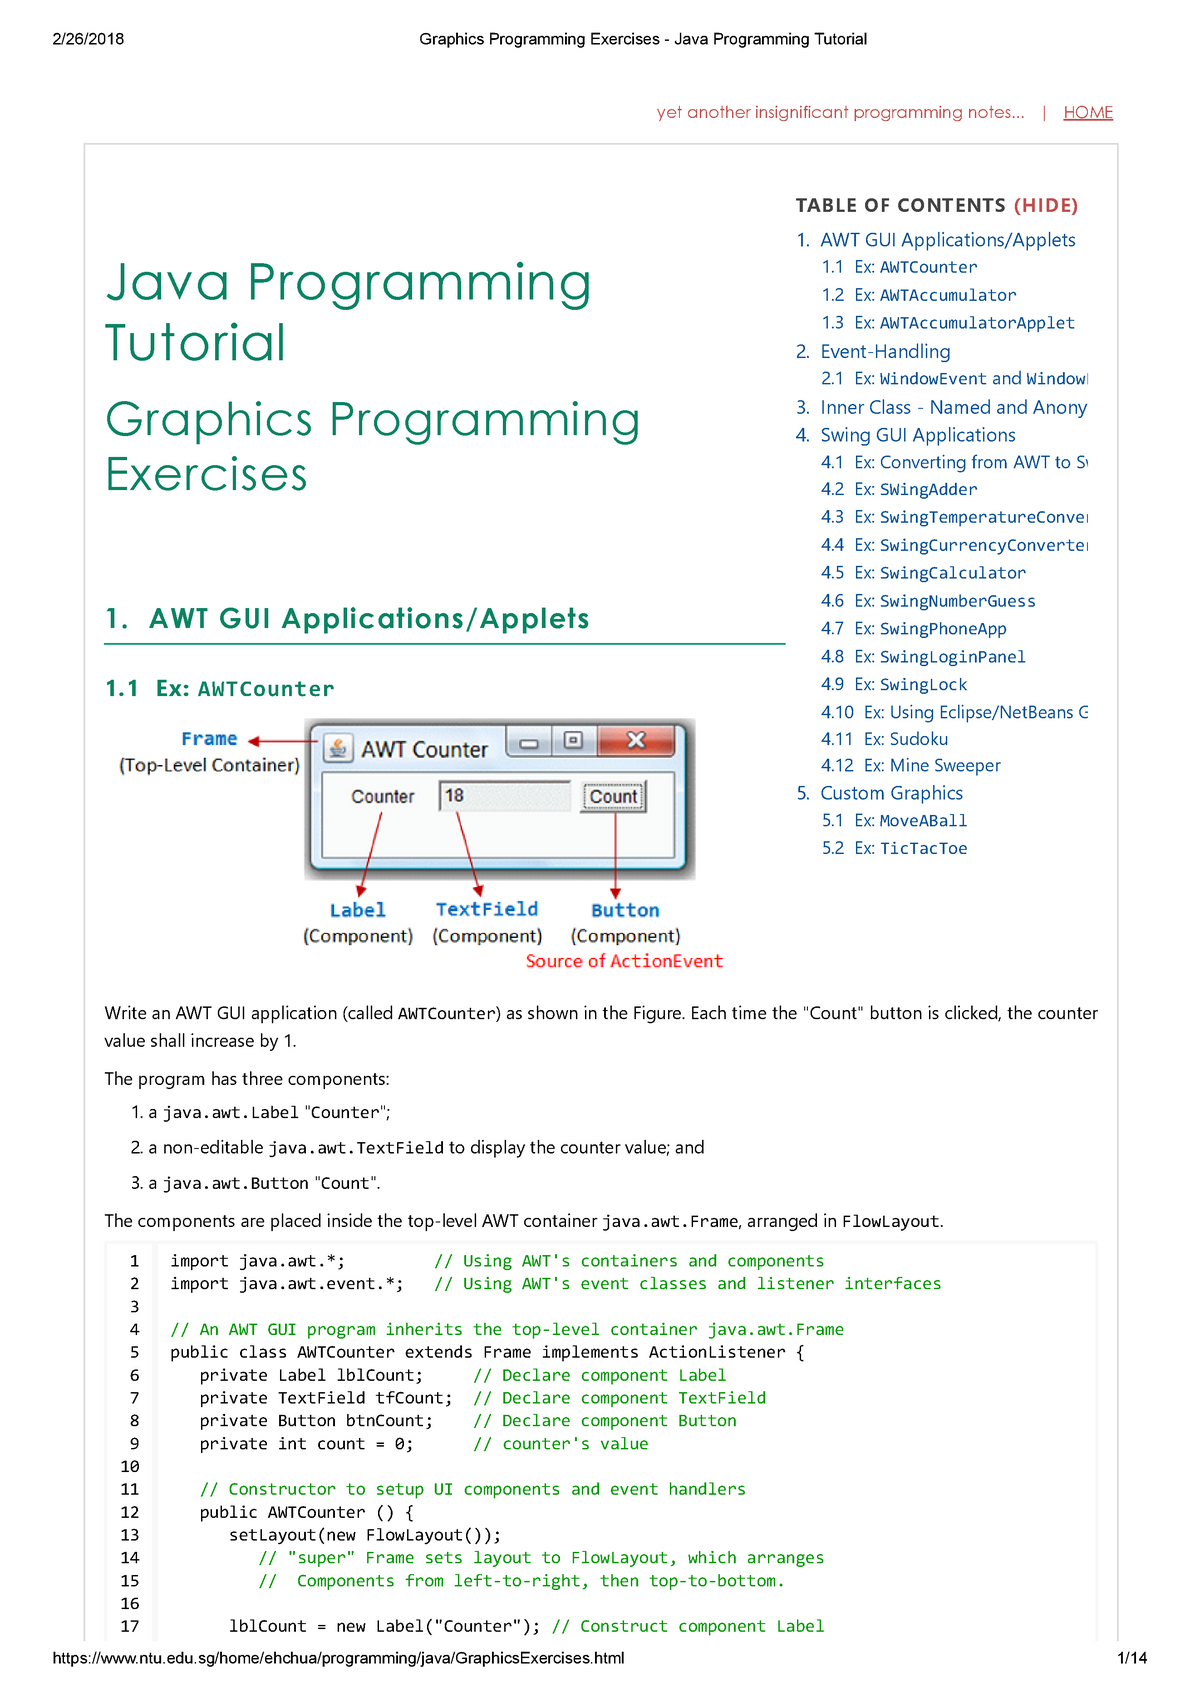 Graphics Programming Exercises - Java Programming Tutorial